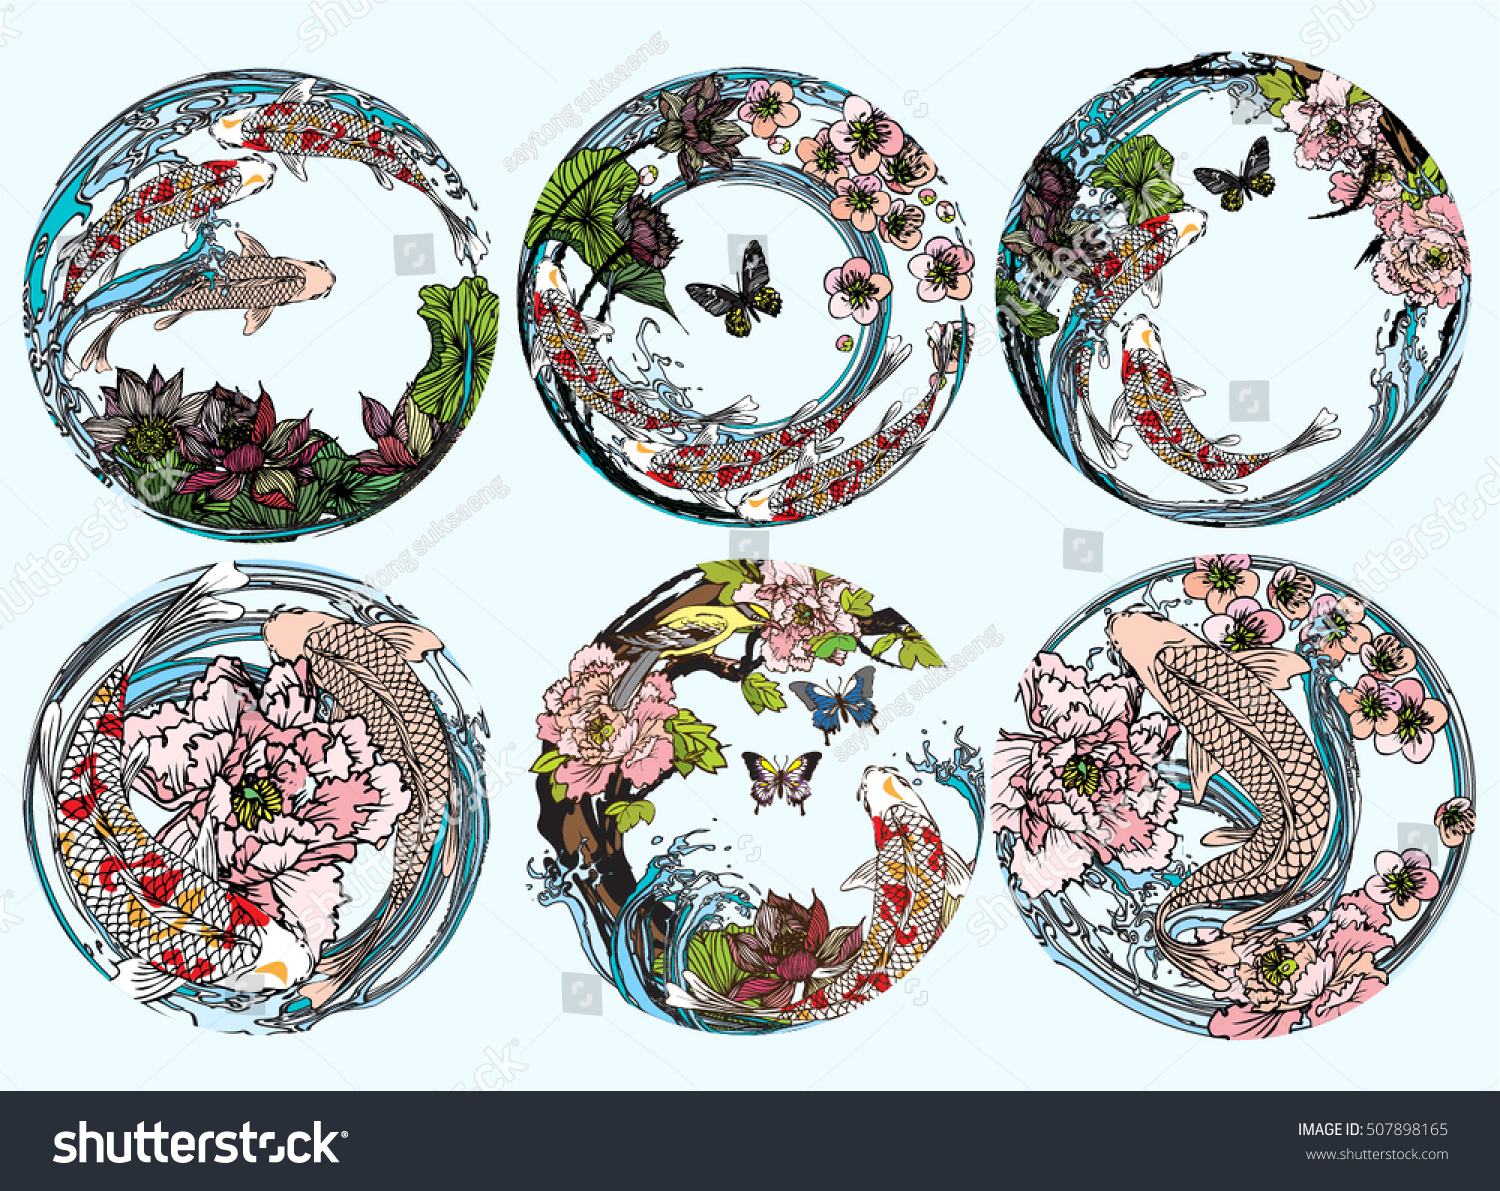 Vector set koi birds butterflies with lotus flower peonies flower cherry blossoms  sc 1 st  Shutterstock & Vector Set Koi Birds Butterflies Lotus Stock Vector 507898165 ...